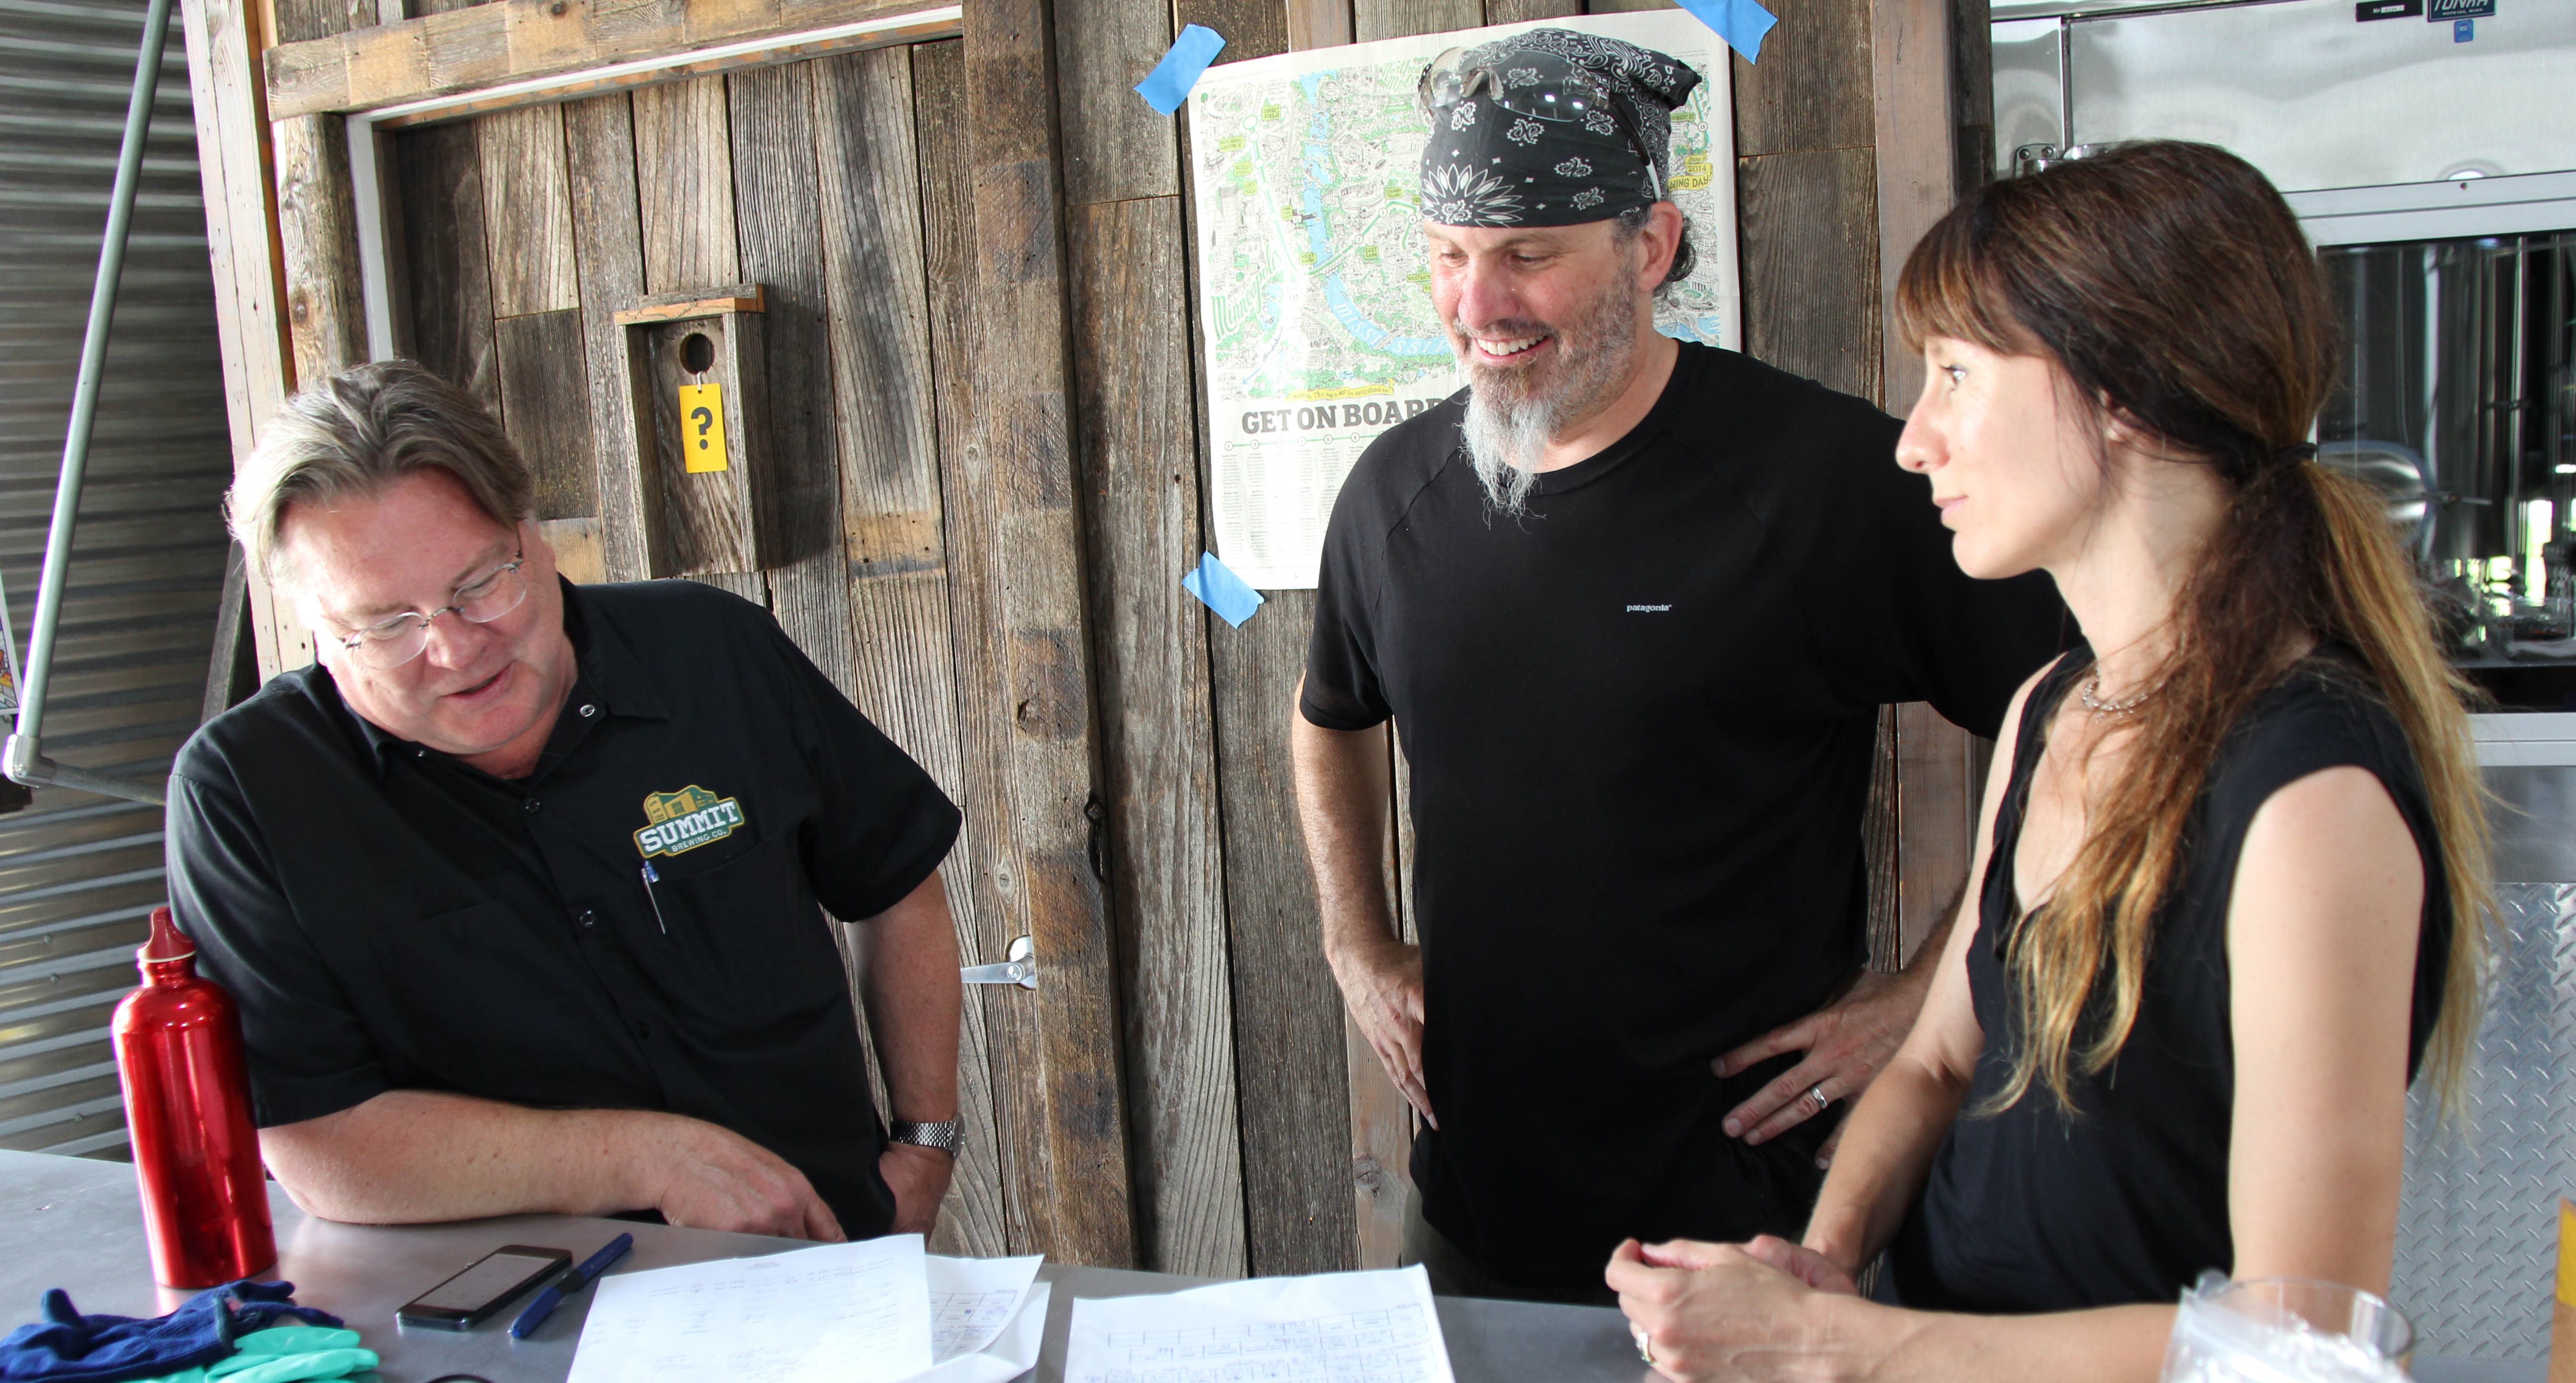 Summit Owner Mark Stutrud recipe planning with Jay and Sandy Boss Febbo, owners of Bang Brewing Co. // Photo by Chip Walton, Summit Brewing Co.